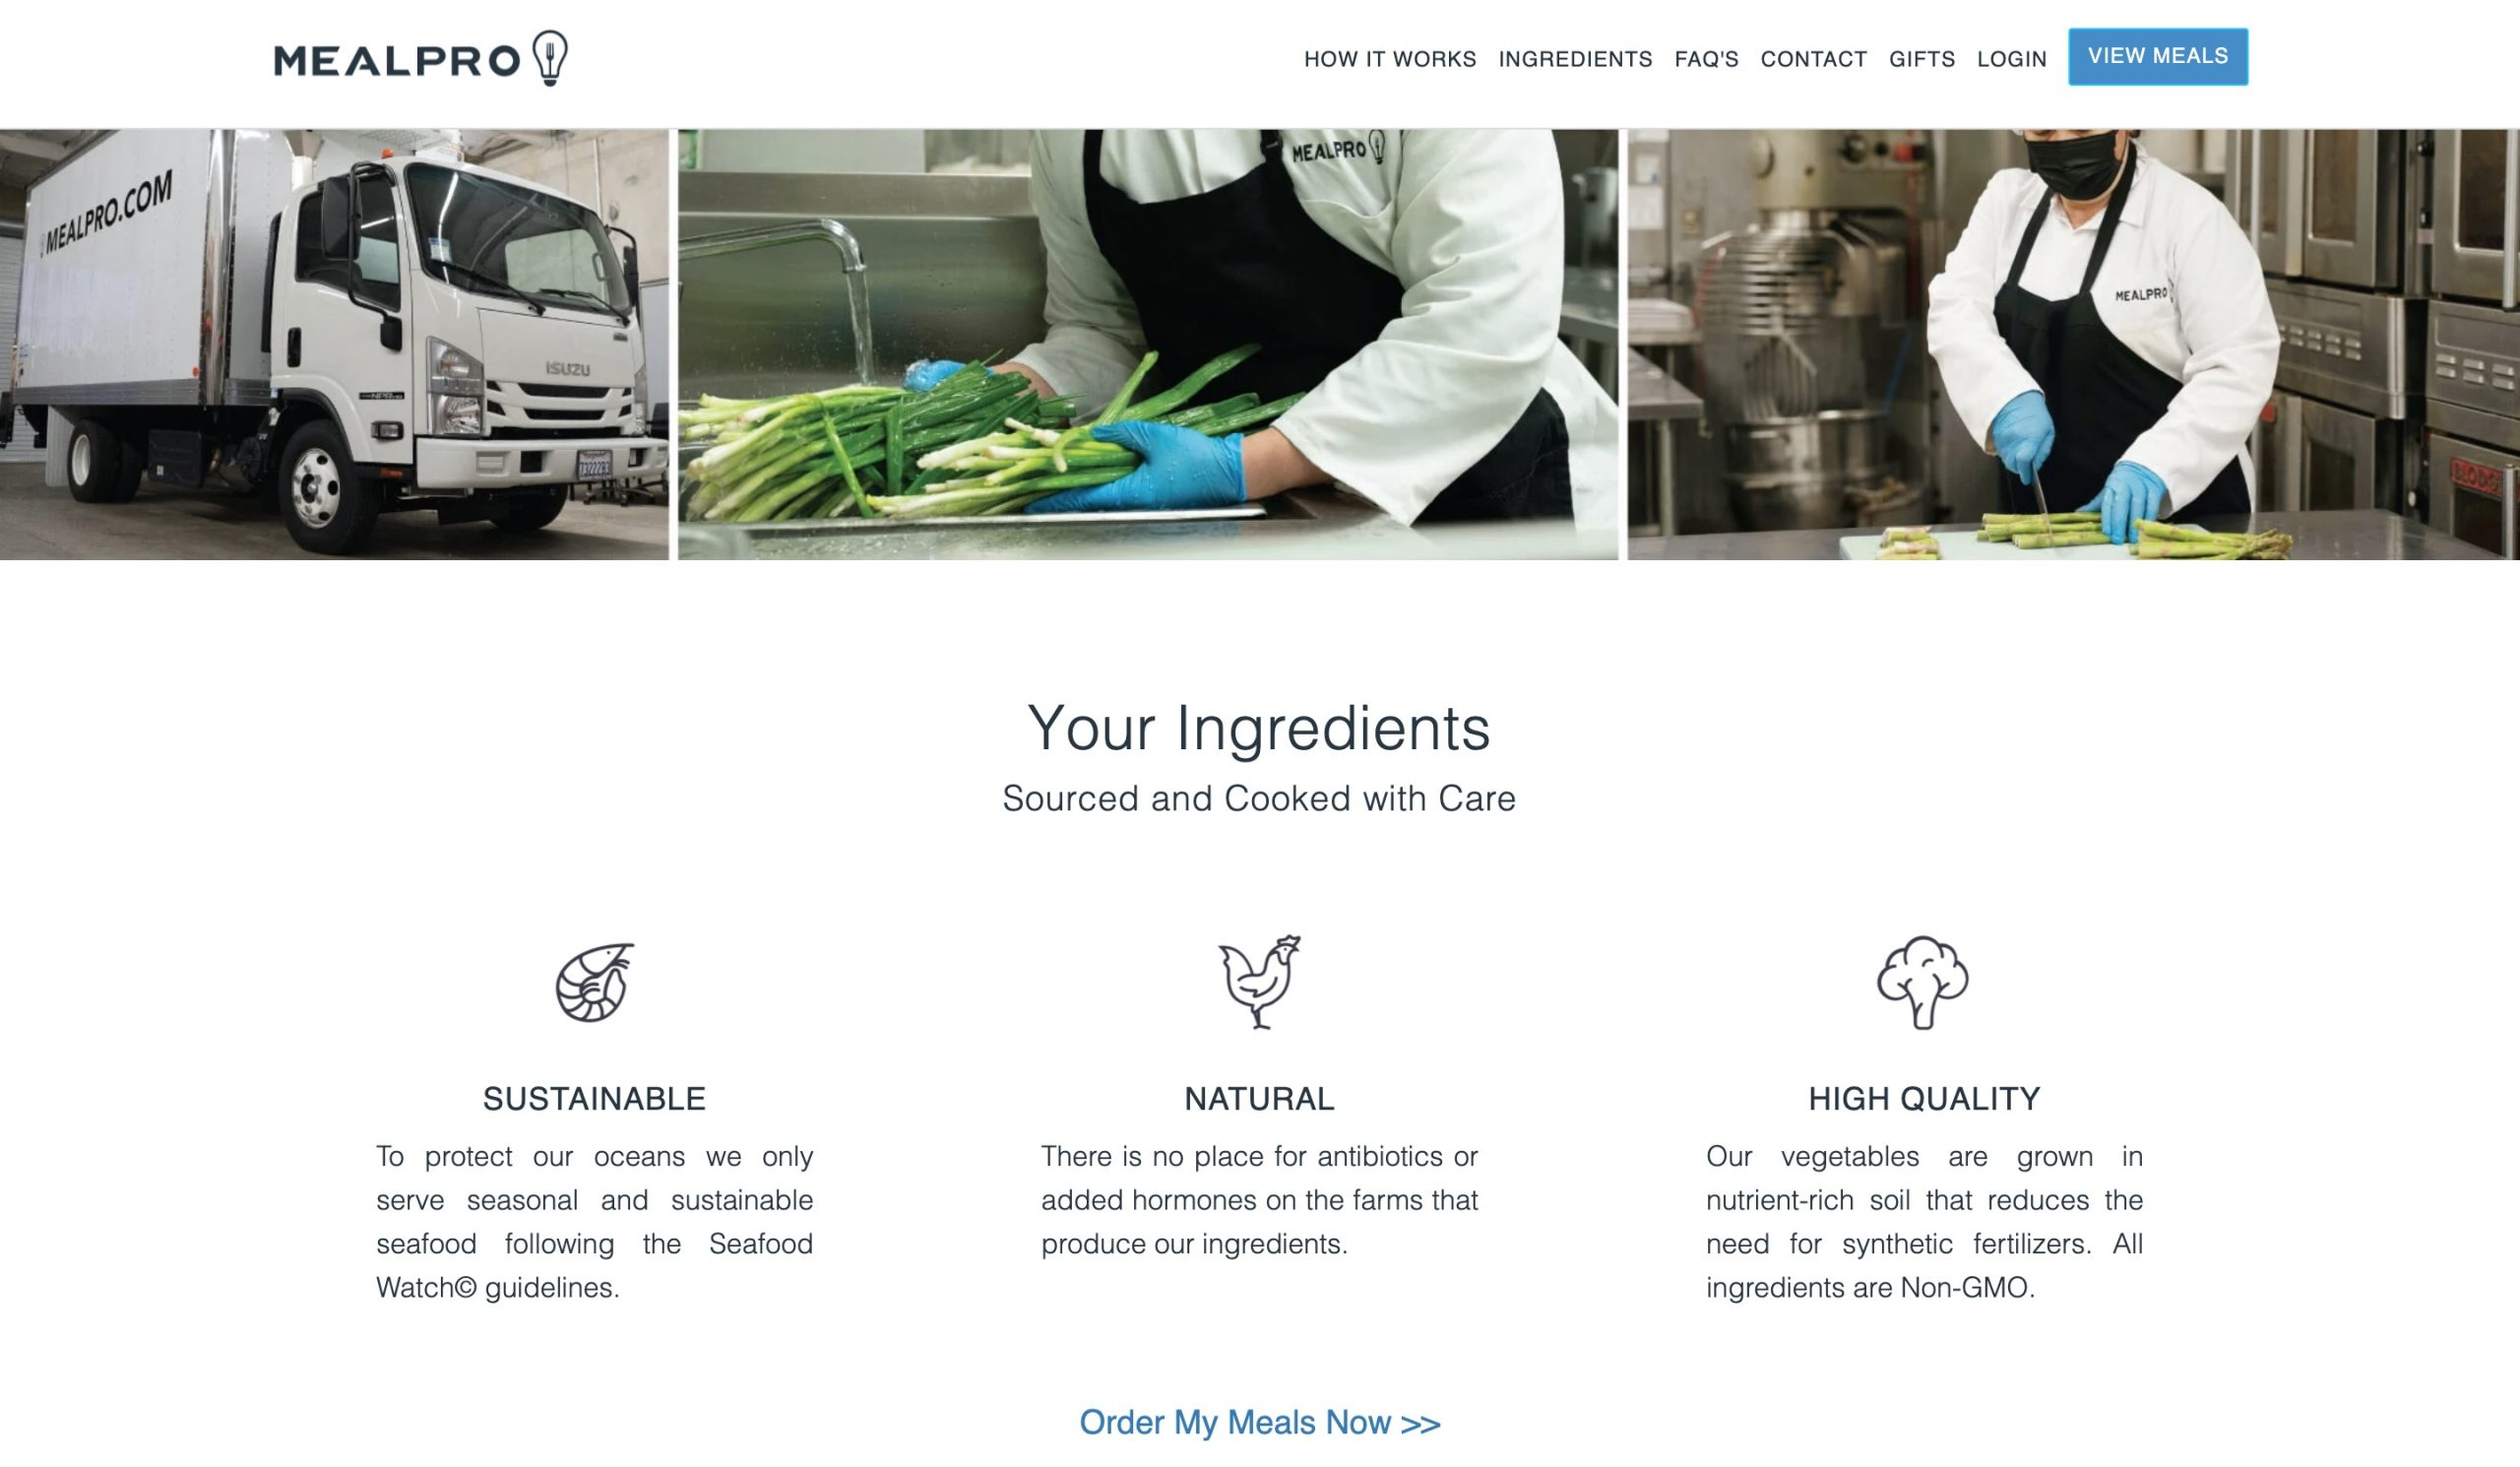 MealPro ingredients